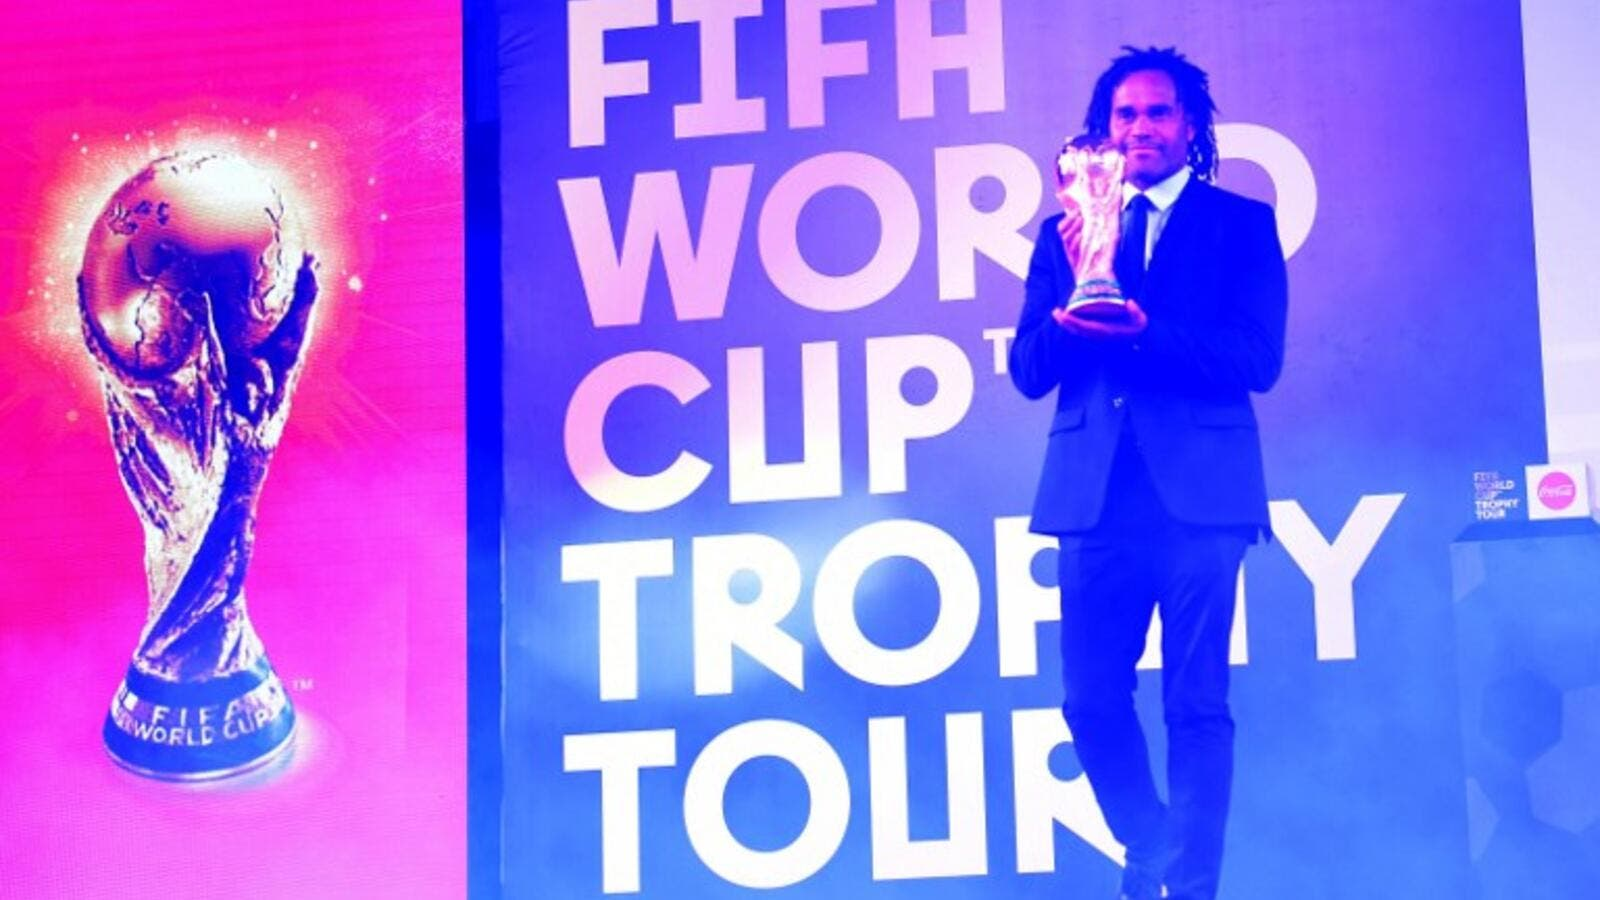 Retired French footballer Christian Karembeu holds the FIFA World Cup Trophy during a ceremony in Lahore on February 3, 2018. The FIFA World Cup Trophy Tour is heading to 50 countries across six continents before returning to the host country in May, ahead of the 2018 FIFA World Cup in Russia.